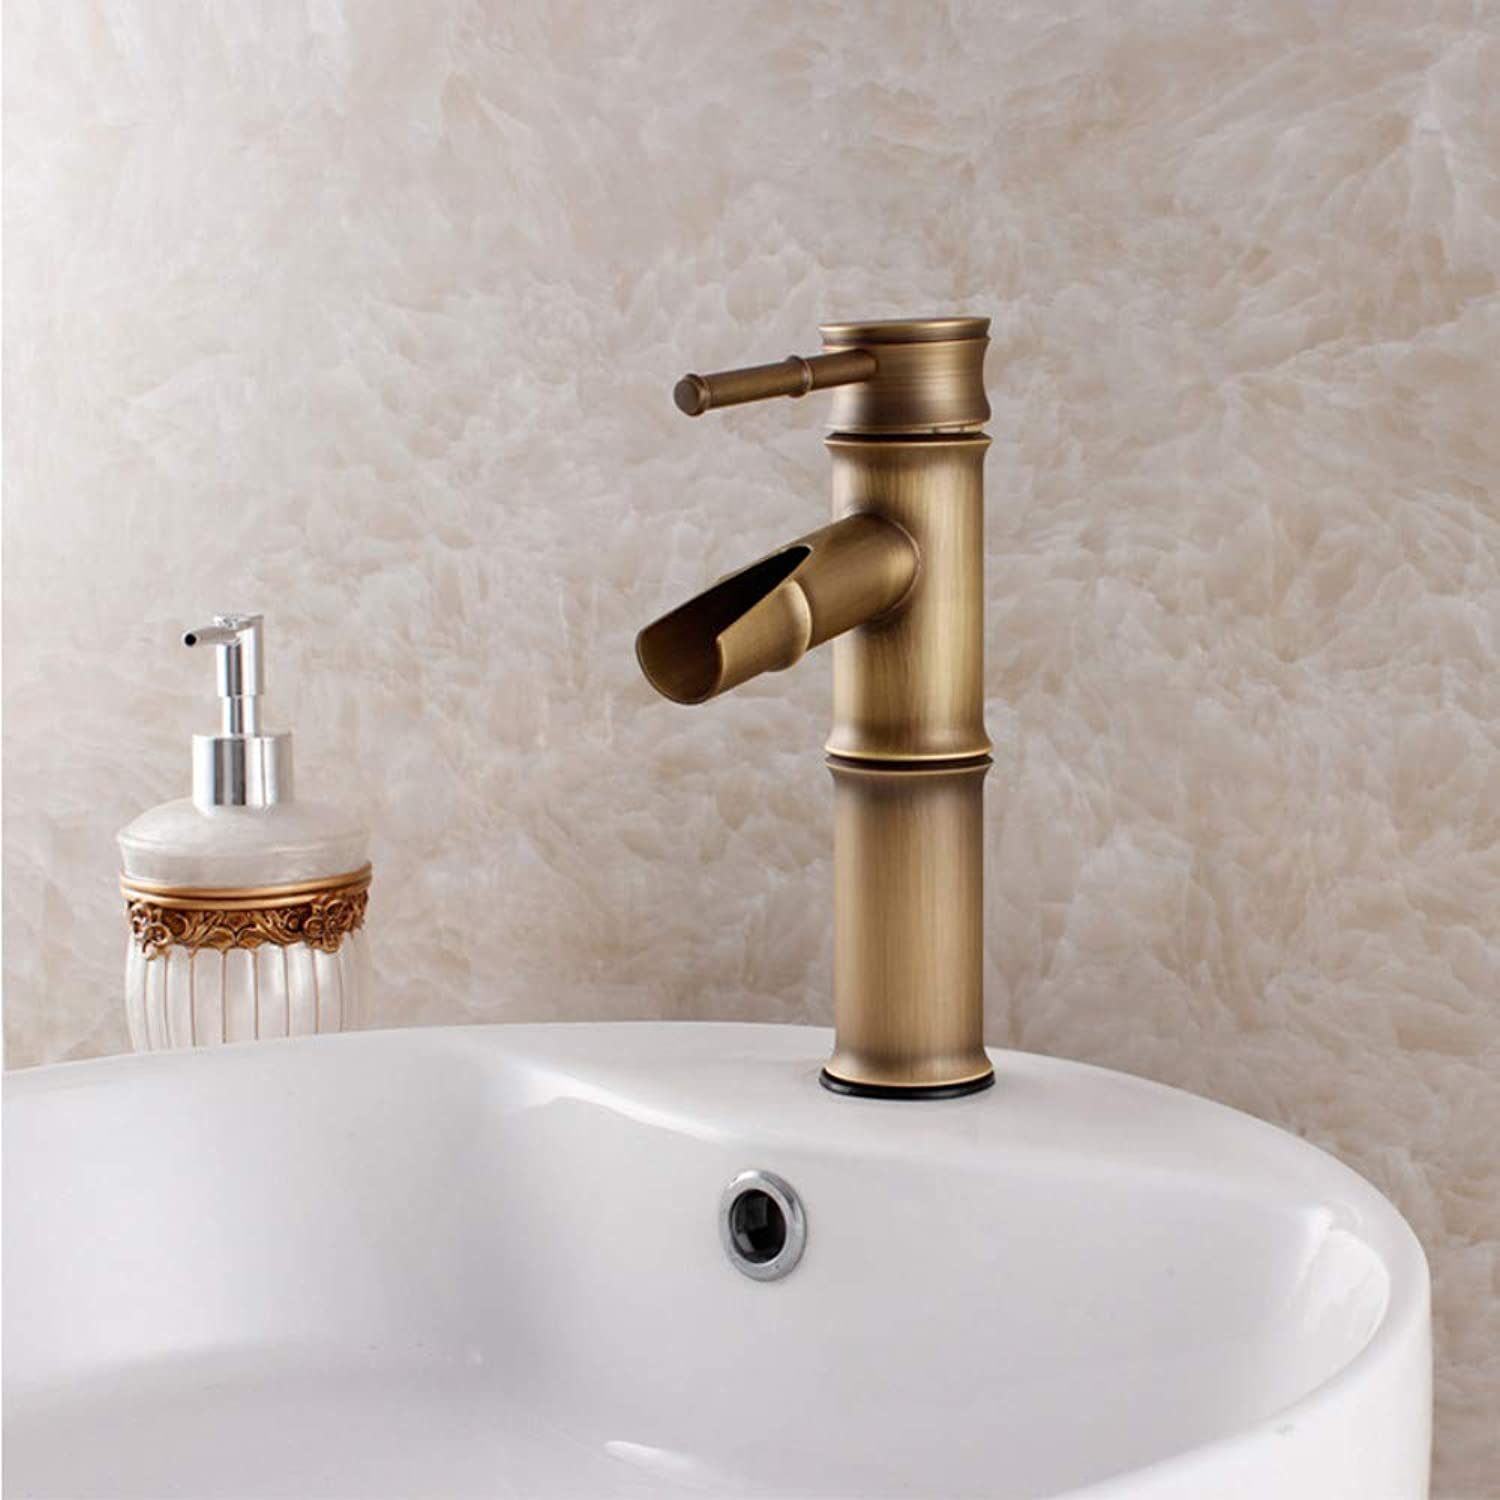 Lddpl Brass Bamboo Design Faucet Cold Hot Water Tap Single Lever Above Deck Basin Retro New 8026-2